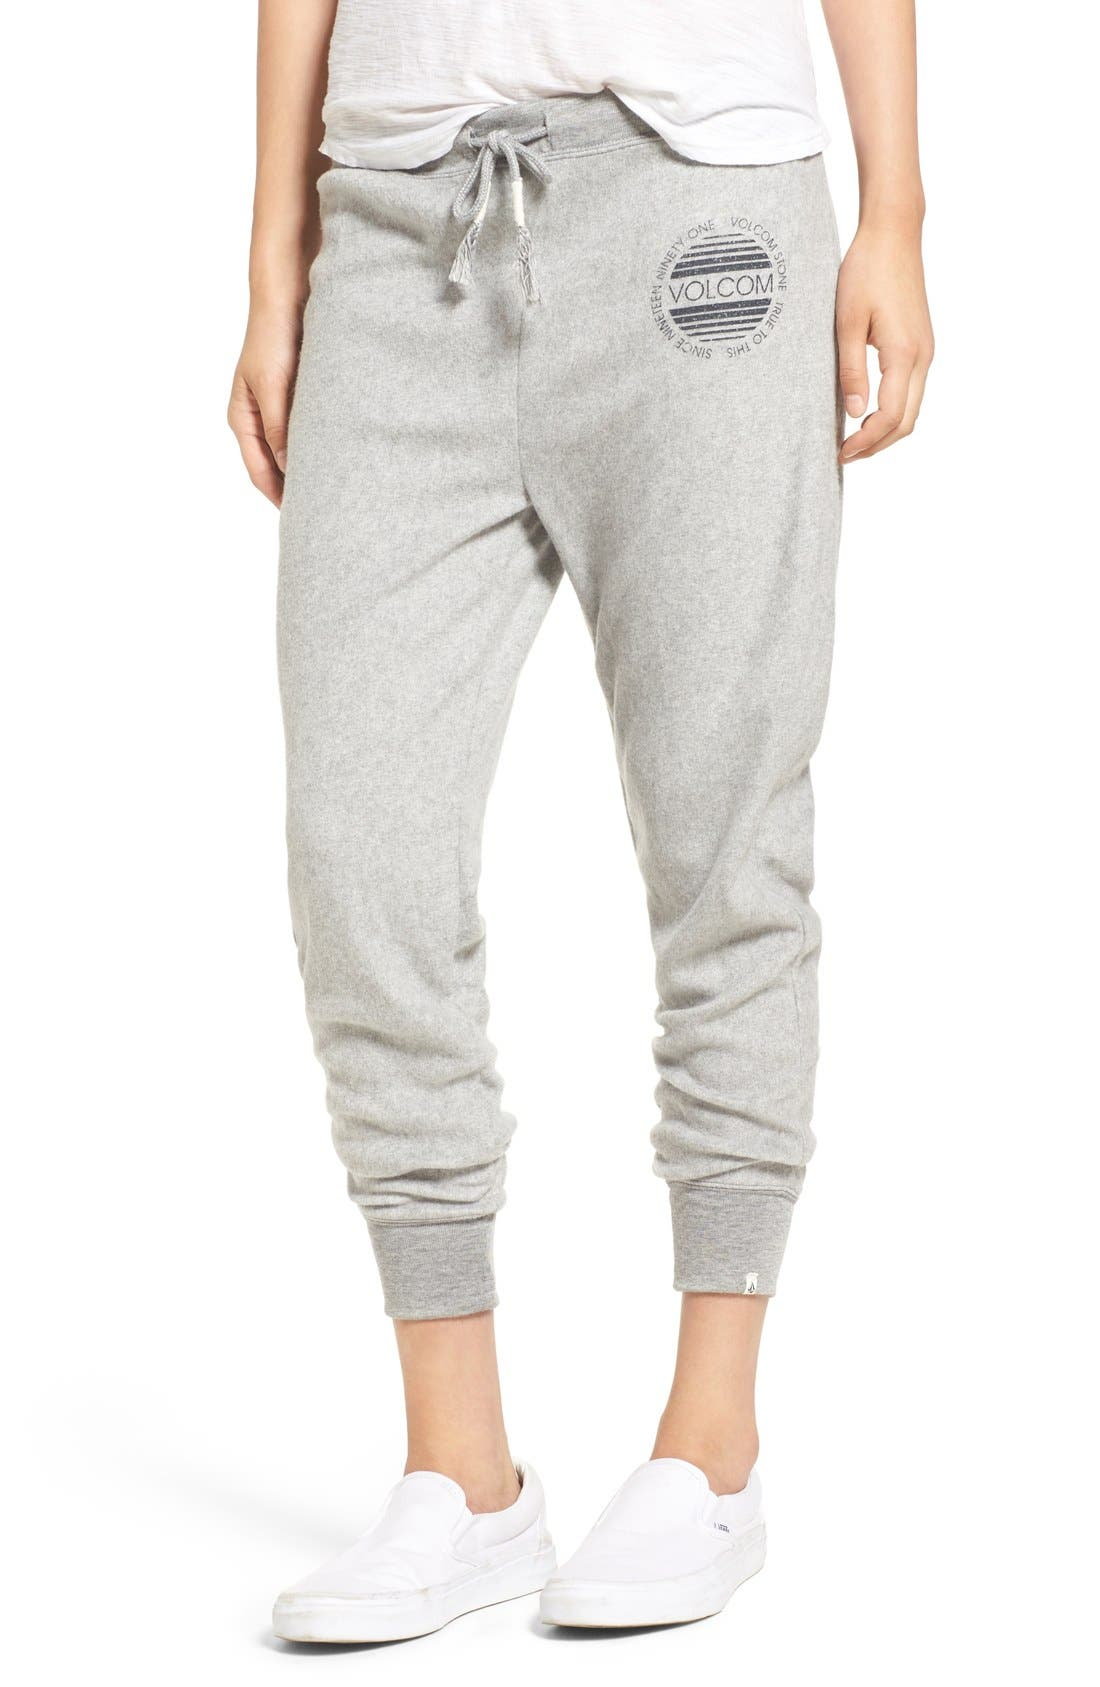 Alternate Image 1 Selected - Volcom 'Lived In' Drawstring Fleece Jogger Pants